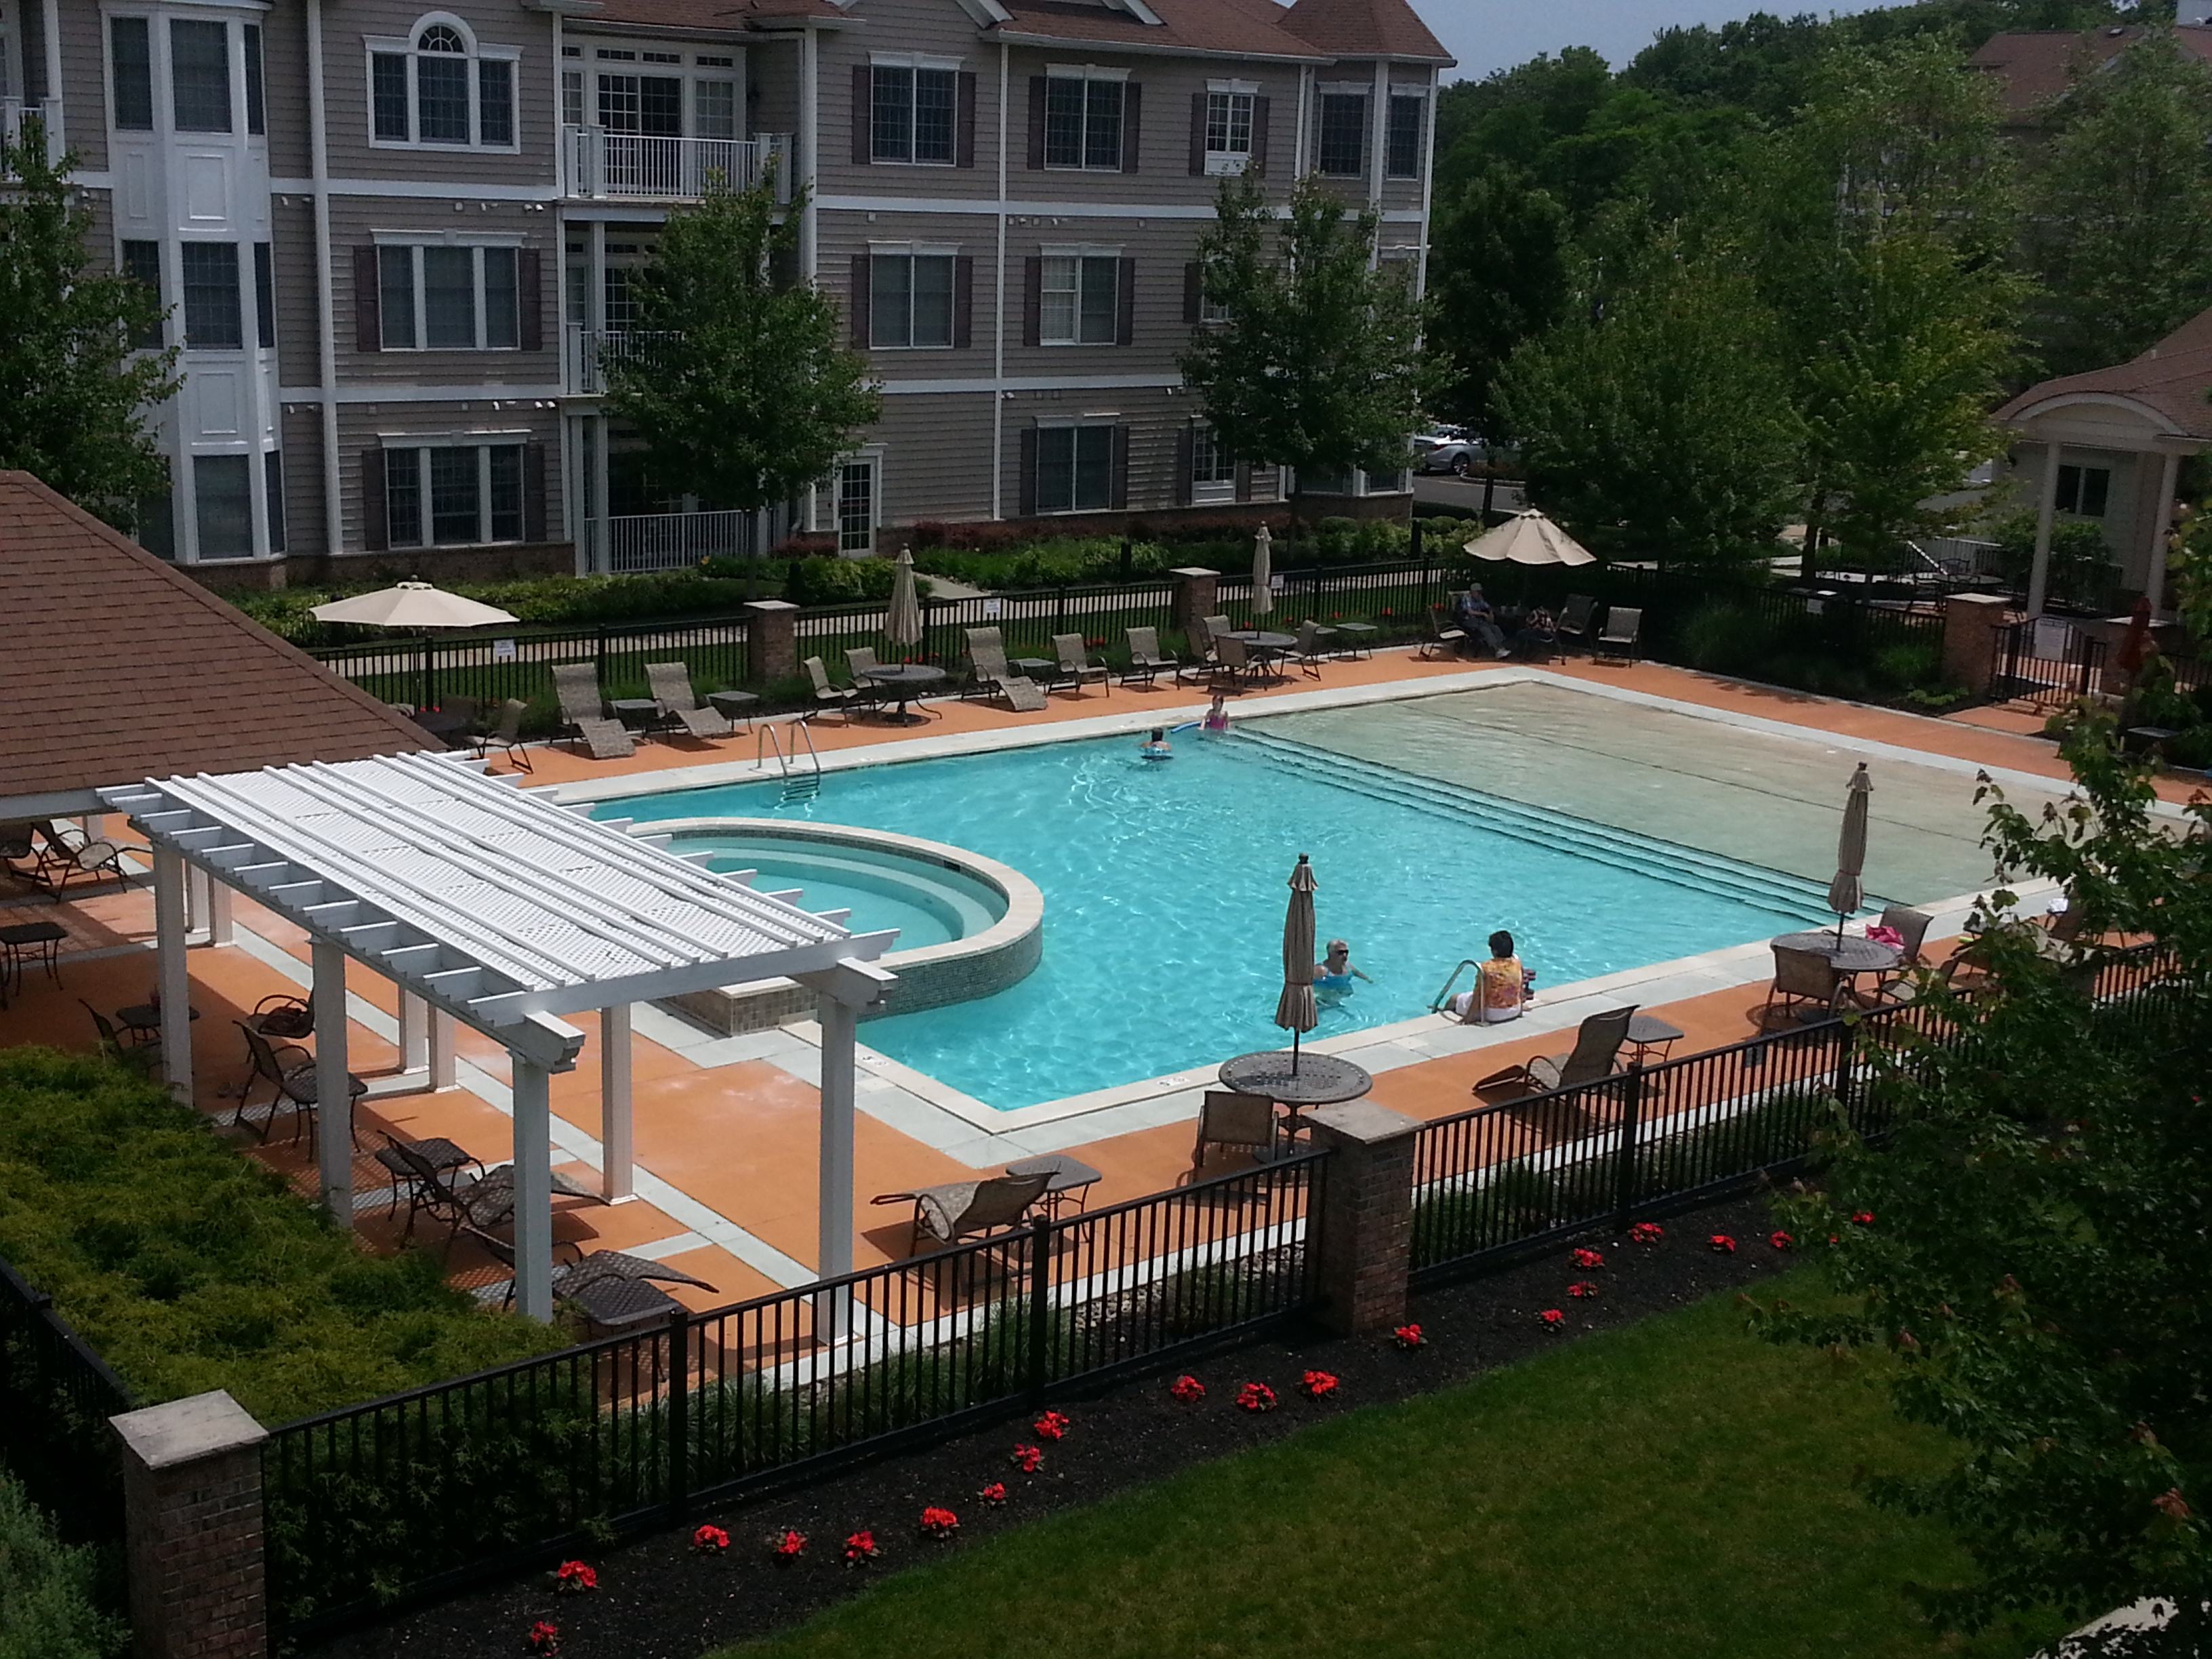 Located in the center of Nobility Crest, the community pool is among the finest in the area.